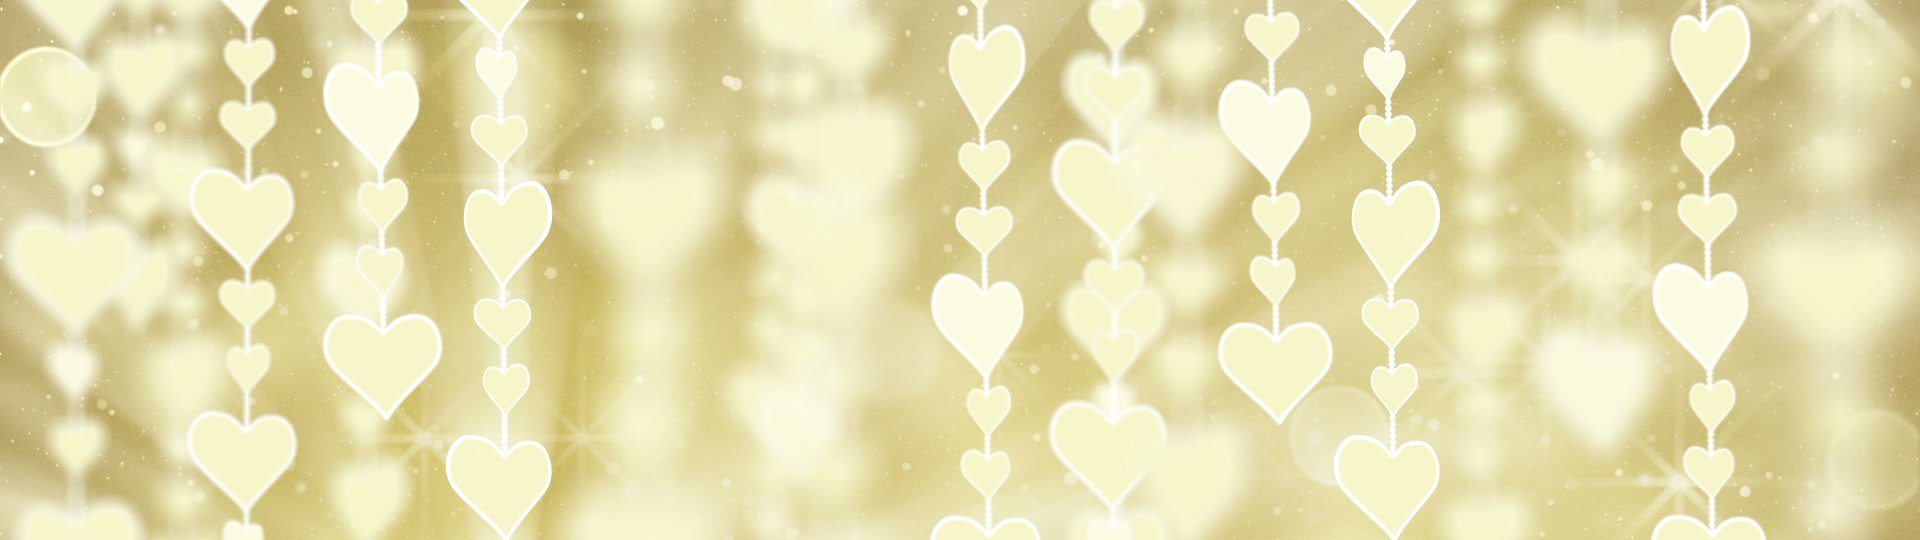 Dangling gold hearts loop | dangling gold hearts. computer generated seamless loop romantic motion background - ID:14679